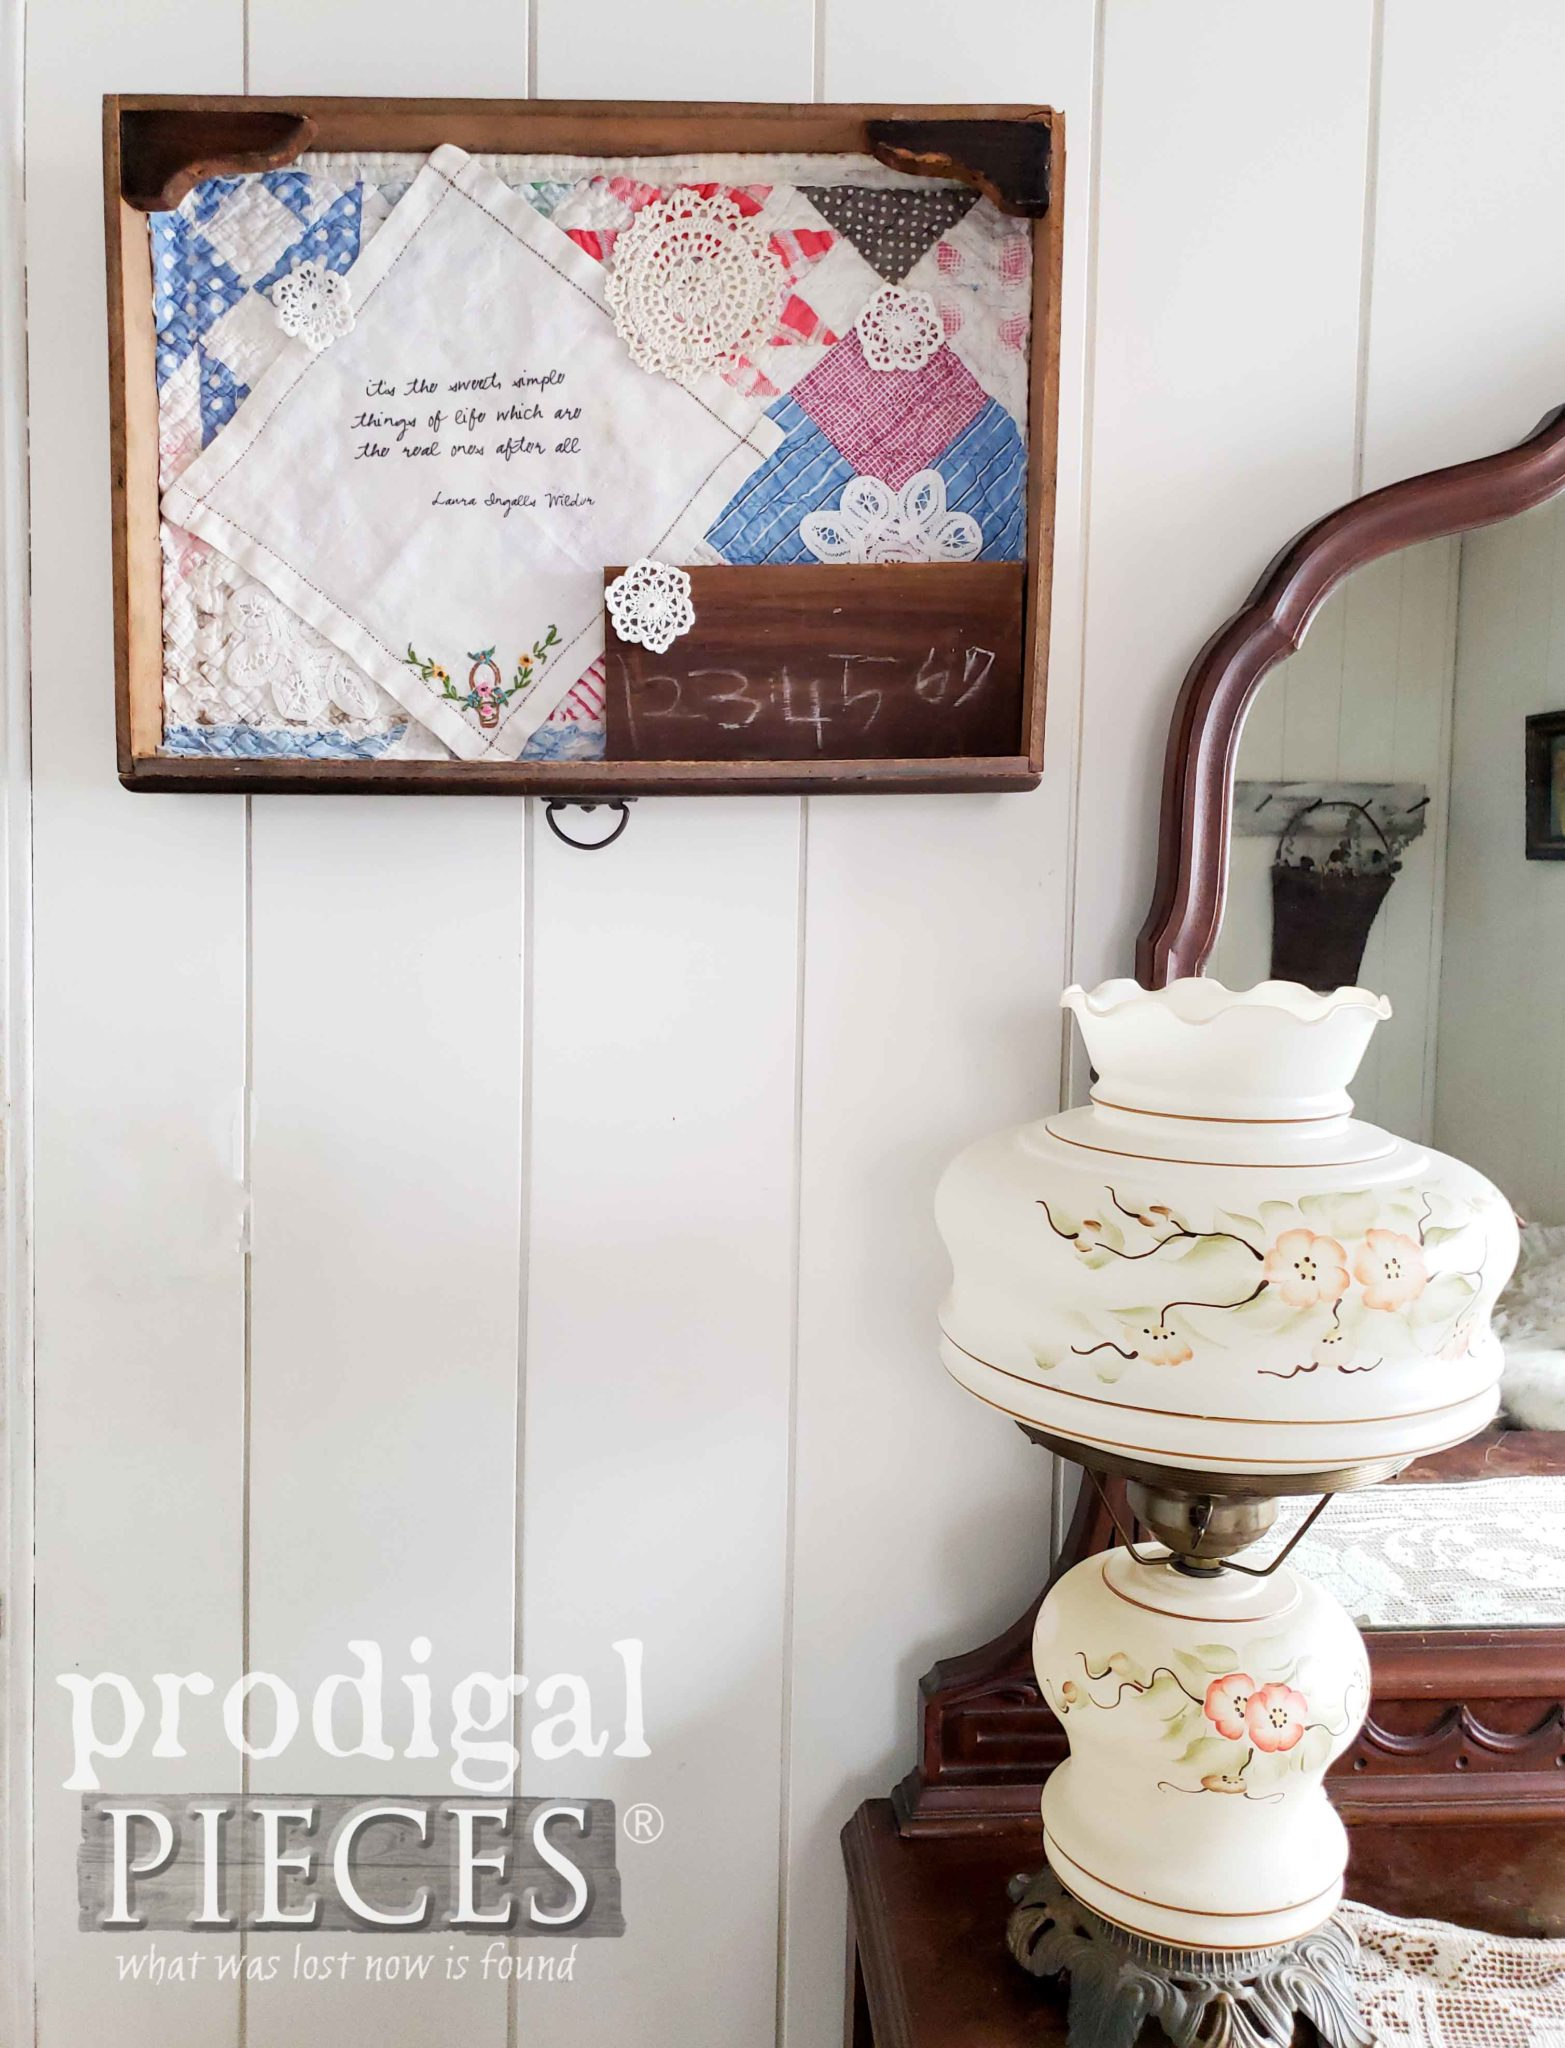 Prairie Farmhouse Vignette Created with an Antique Desk Drawer Shadow Box with Hand-Stitched Quilt, Vintage Hankie, and Doilies | DIY at Prodigal Pieces | prodigalpieces.com #prodigalpieces #handmade #farmhouse #diy #home #homedecor #vintage #homedecorideas